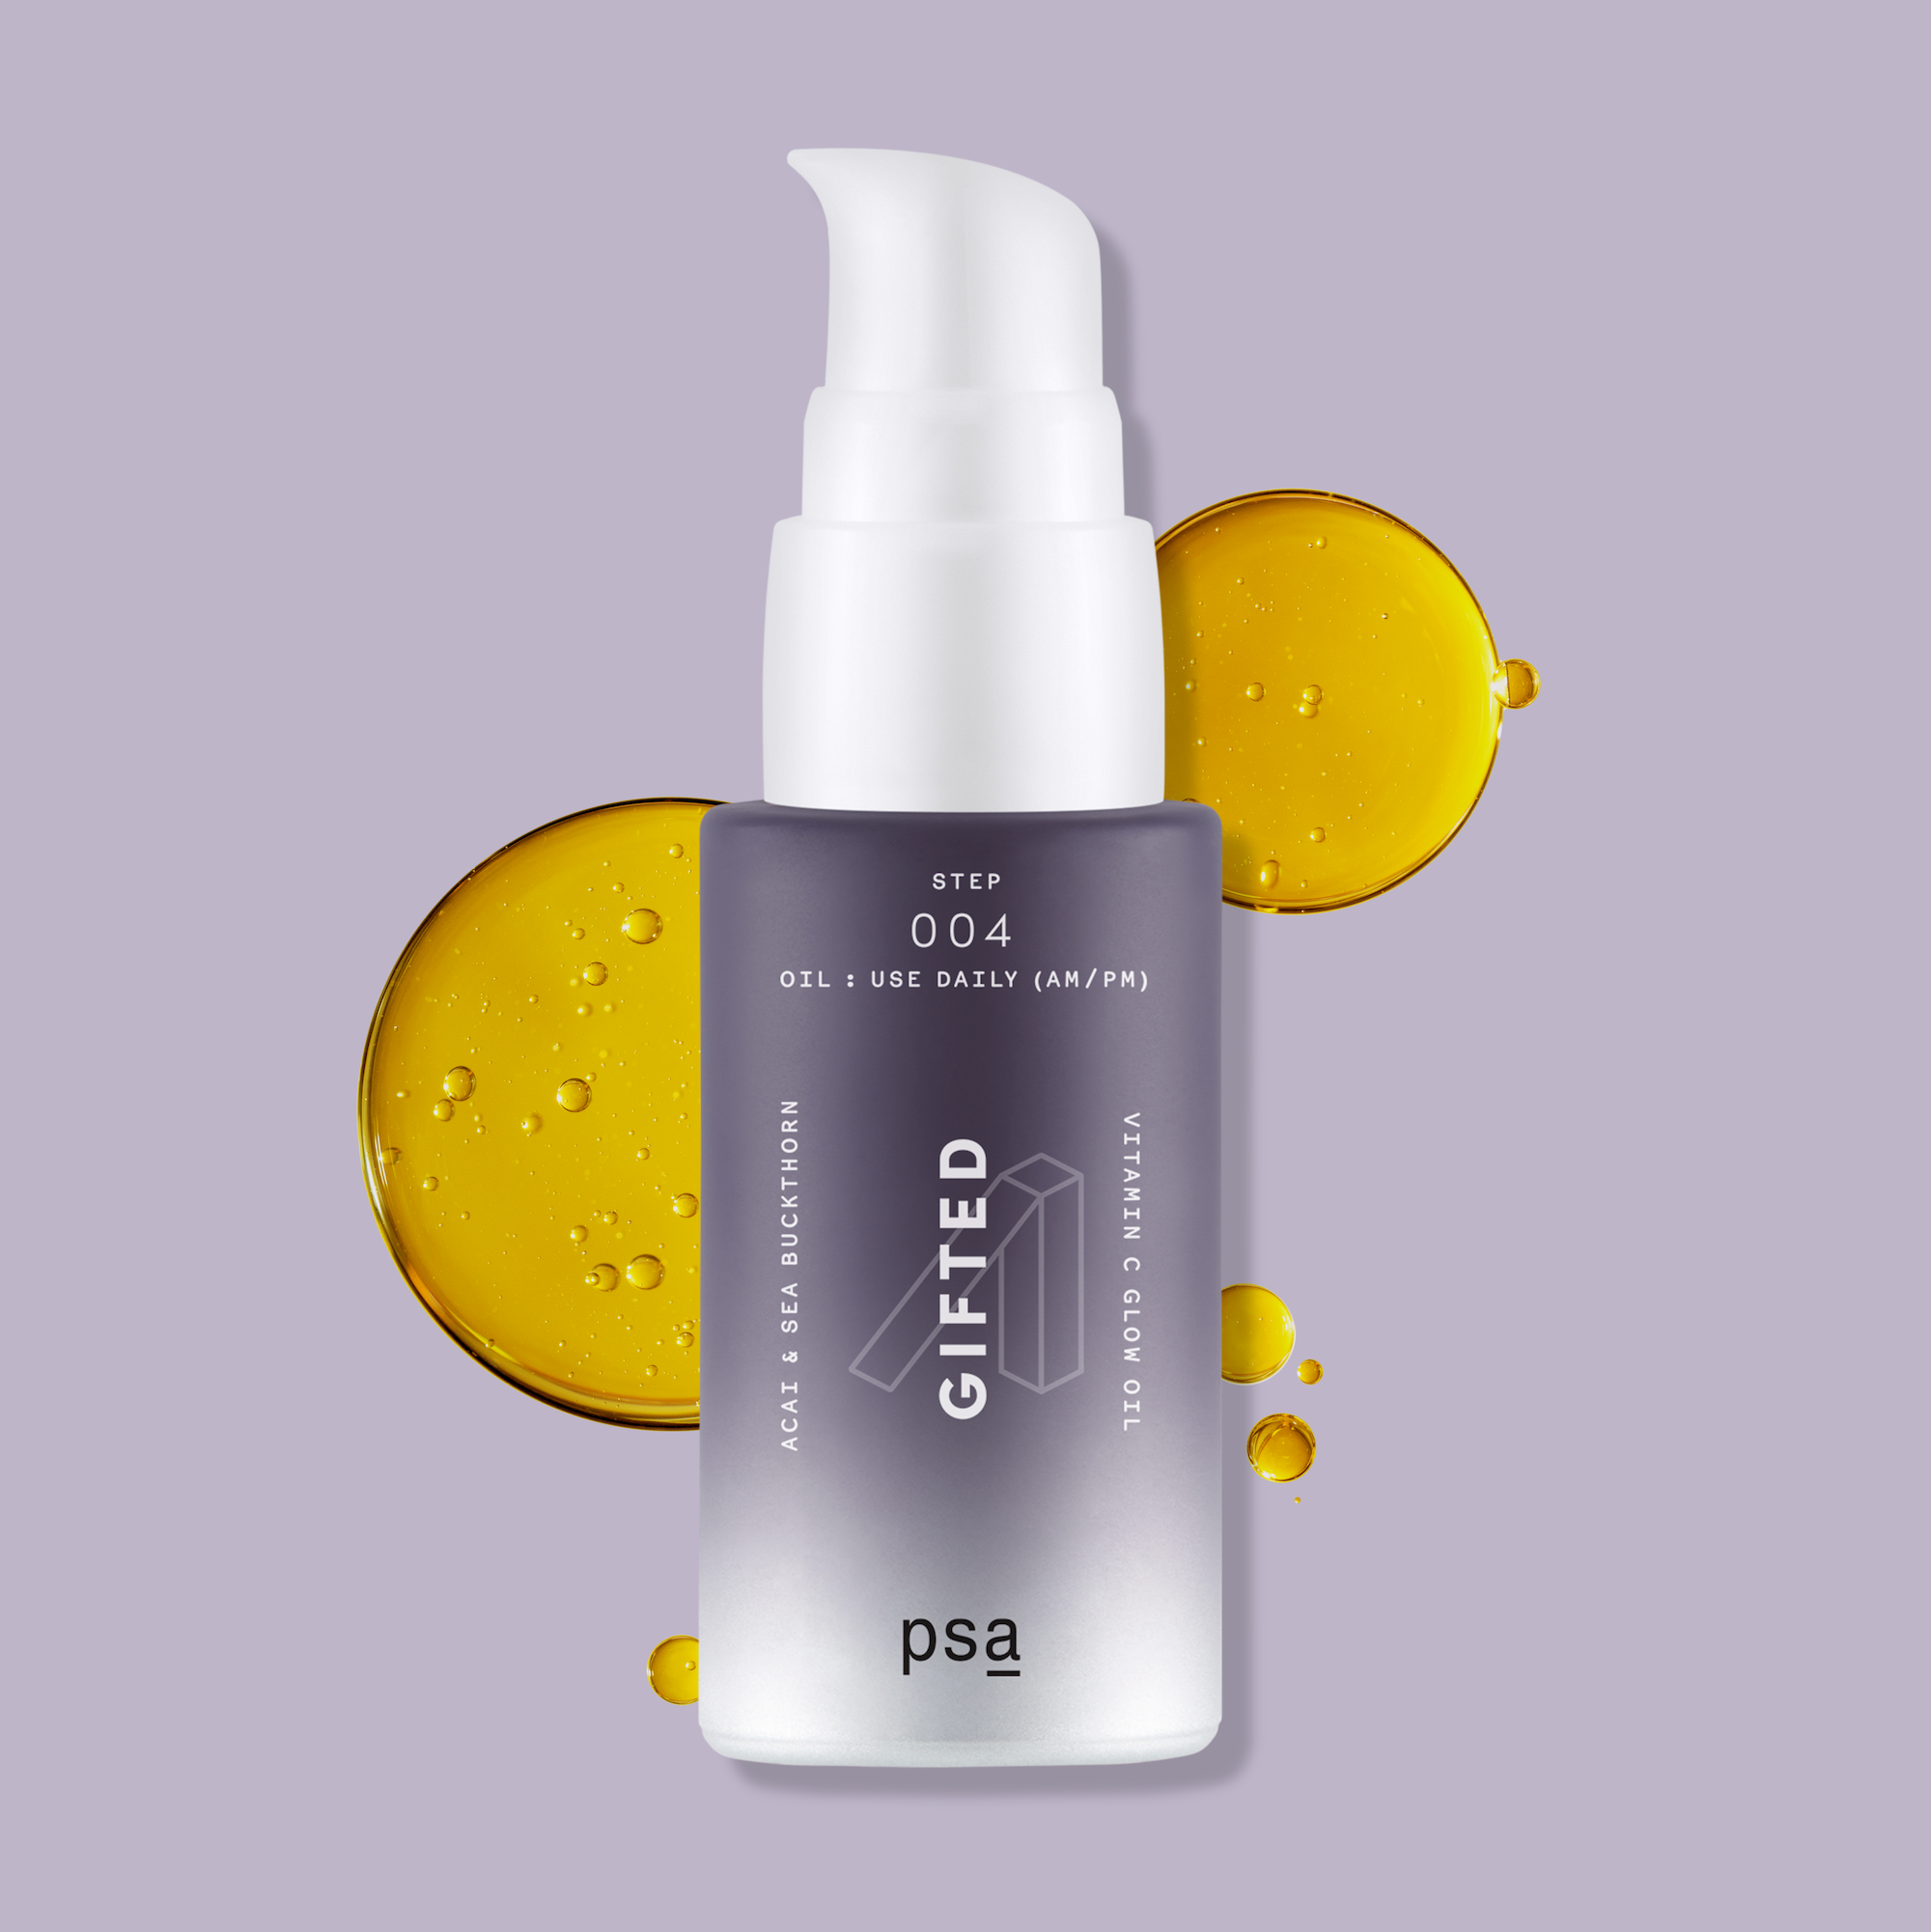 Alternate product image for Gifted Acai & Sea Buckthorn Vitamin C Glow Oil shown with the description.